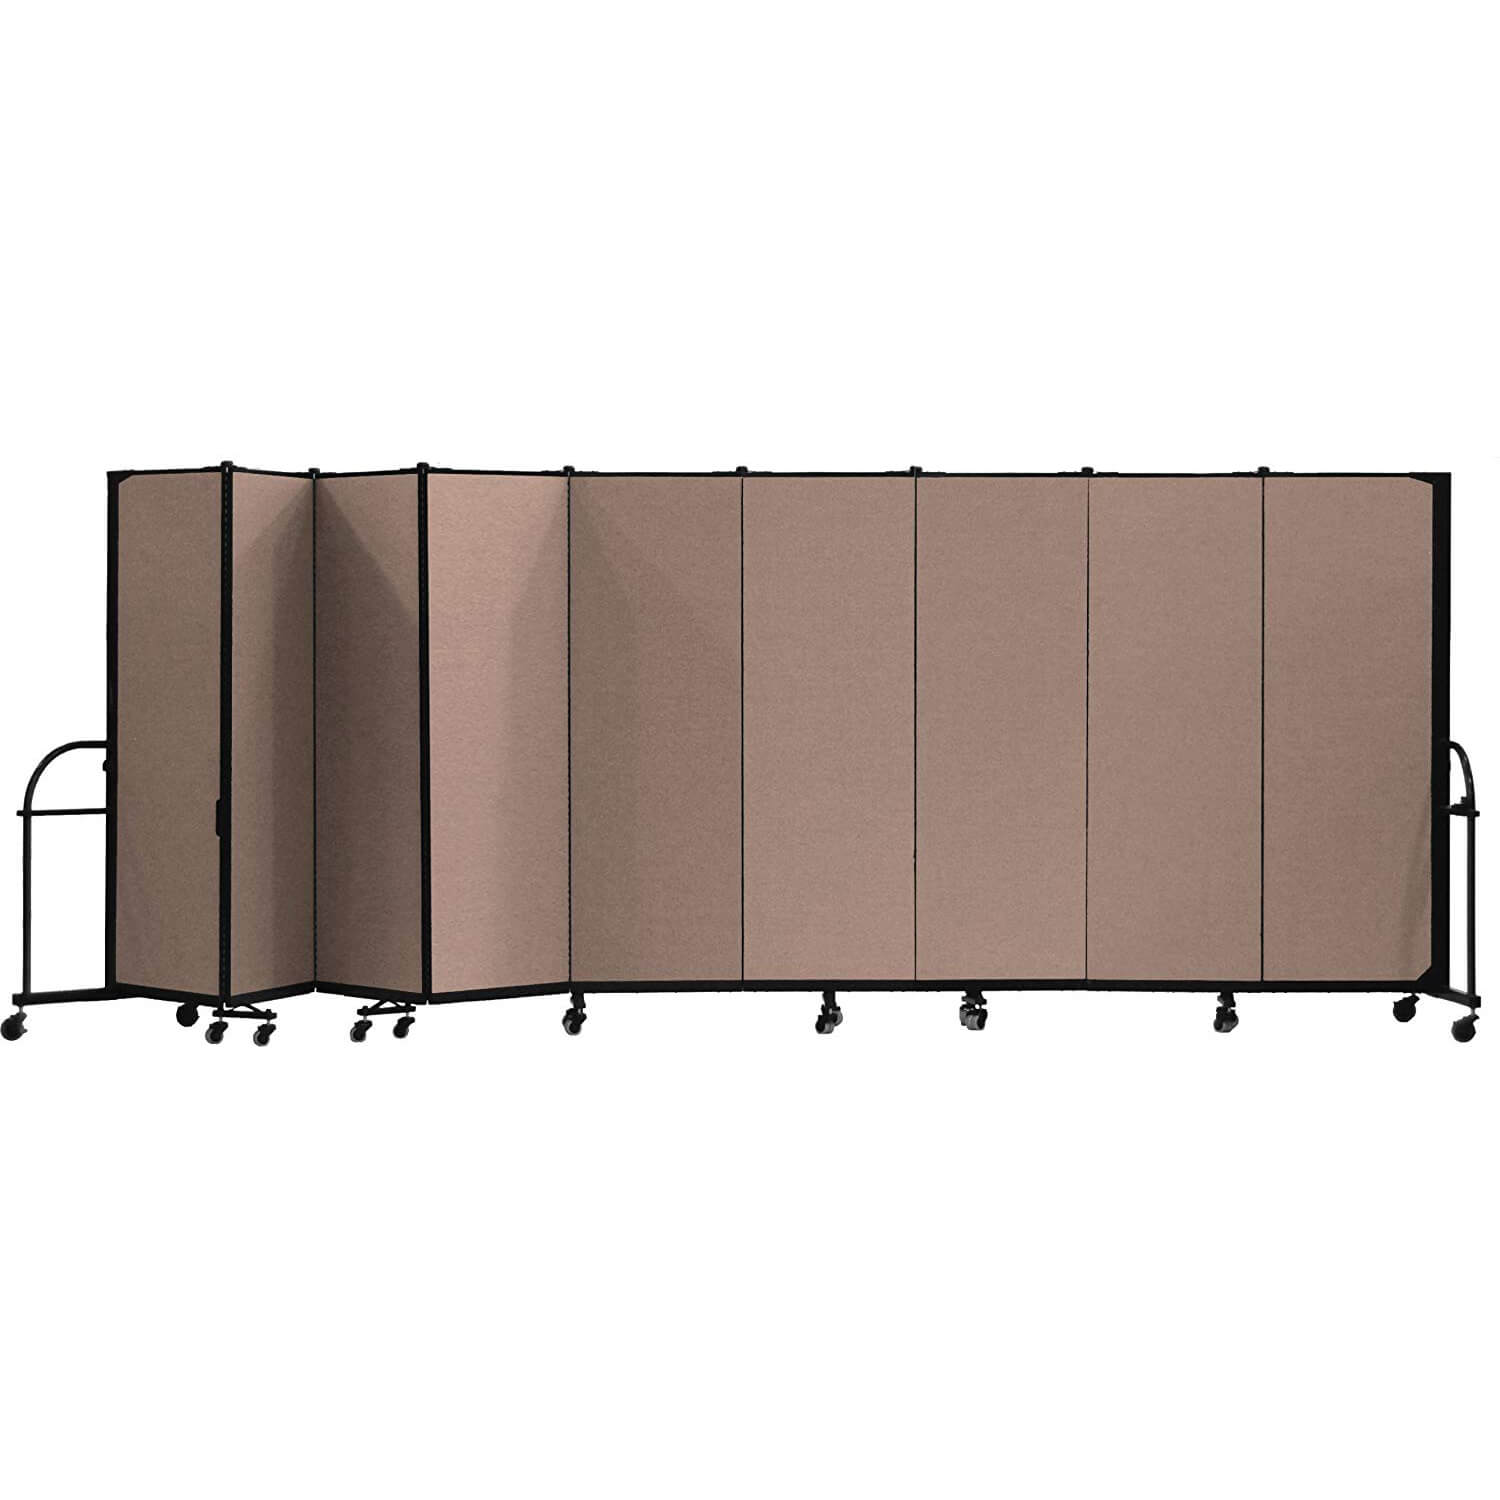 Panel room dividers CUB QSCFSL609DO RCS